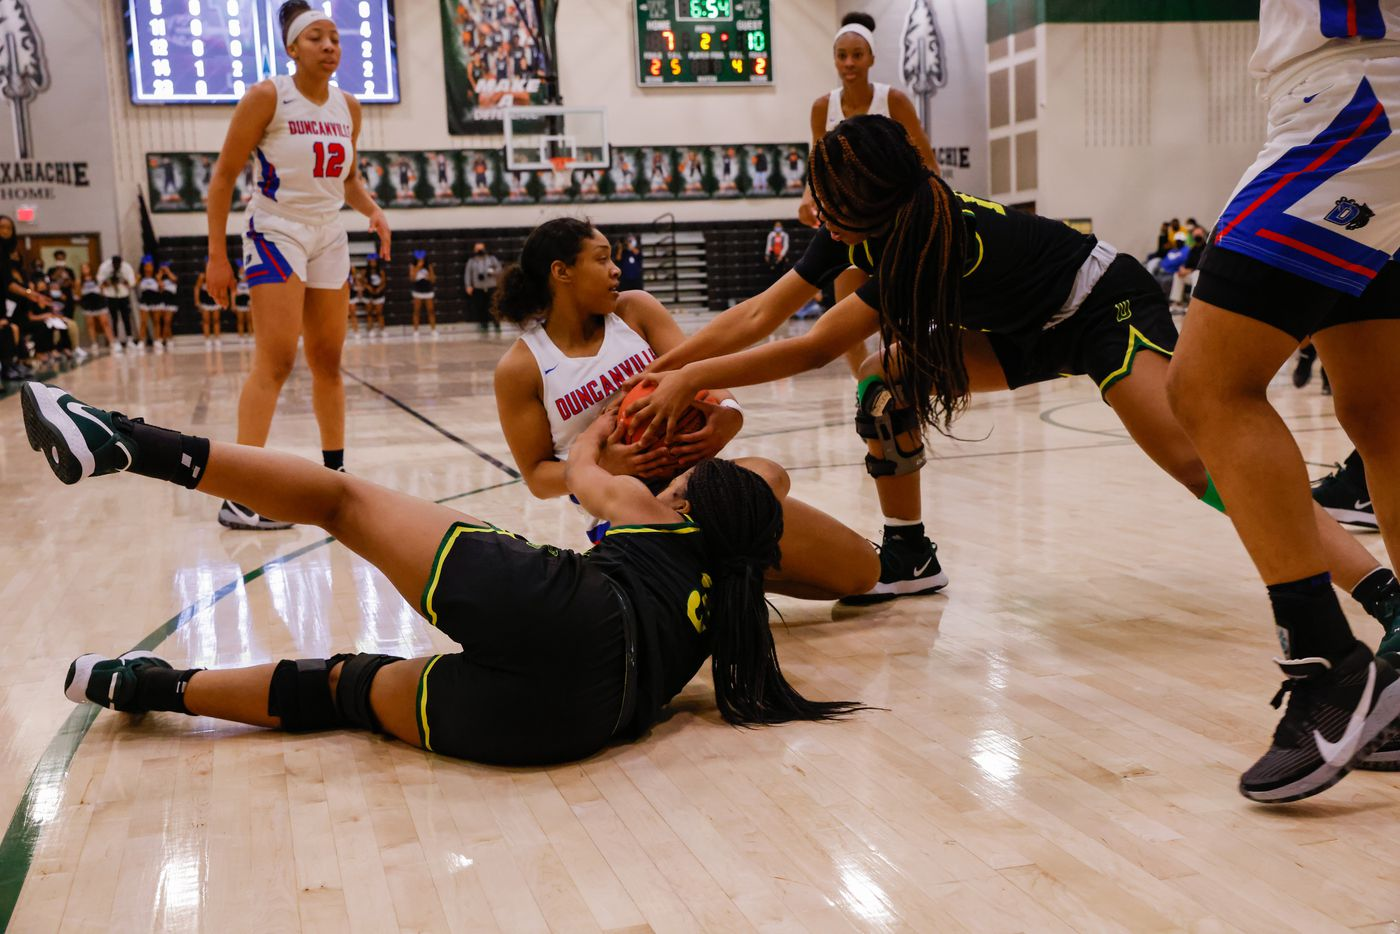 Duncanville's Kiyara Howard-Garza (5) attempts to protect the ball from DeSoto during the first half of a UIL girls basketball Class 6A Region II in Waxahachie on Tuesday, March 2, 2021. (Juan Figueroa/ The Dallas Morning News)